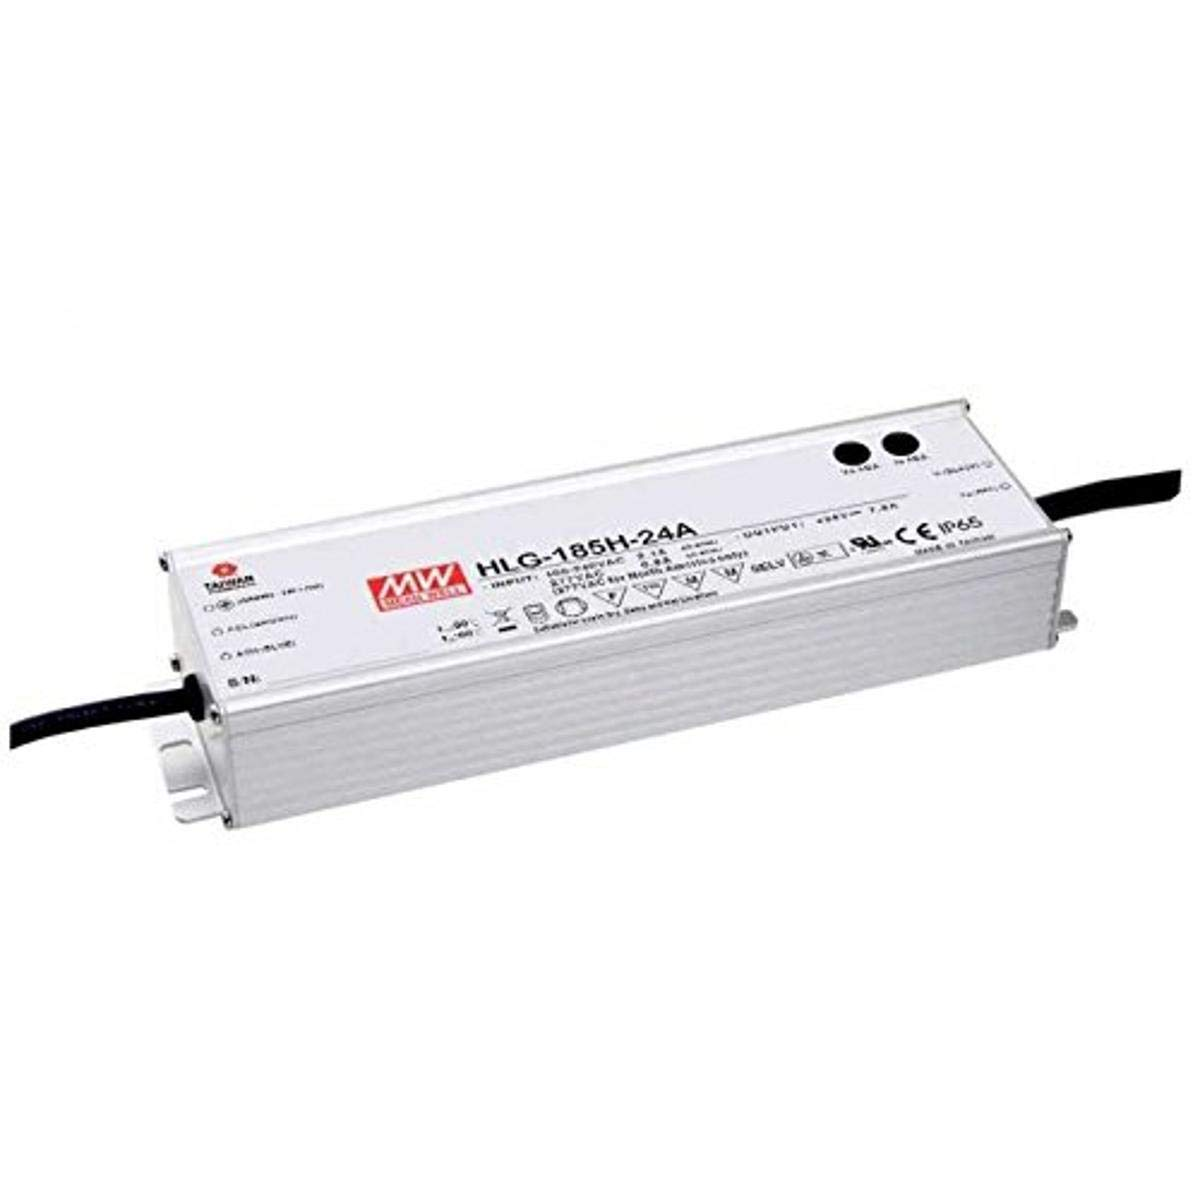 LED Driver Single Output Switching Power Supply 185 Watt 12V @ 13A A Model, 185W